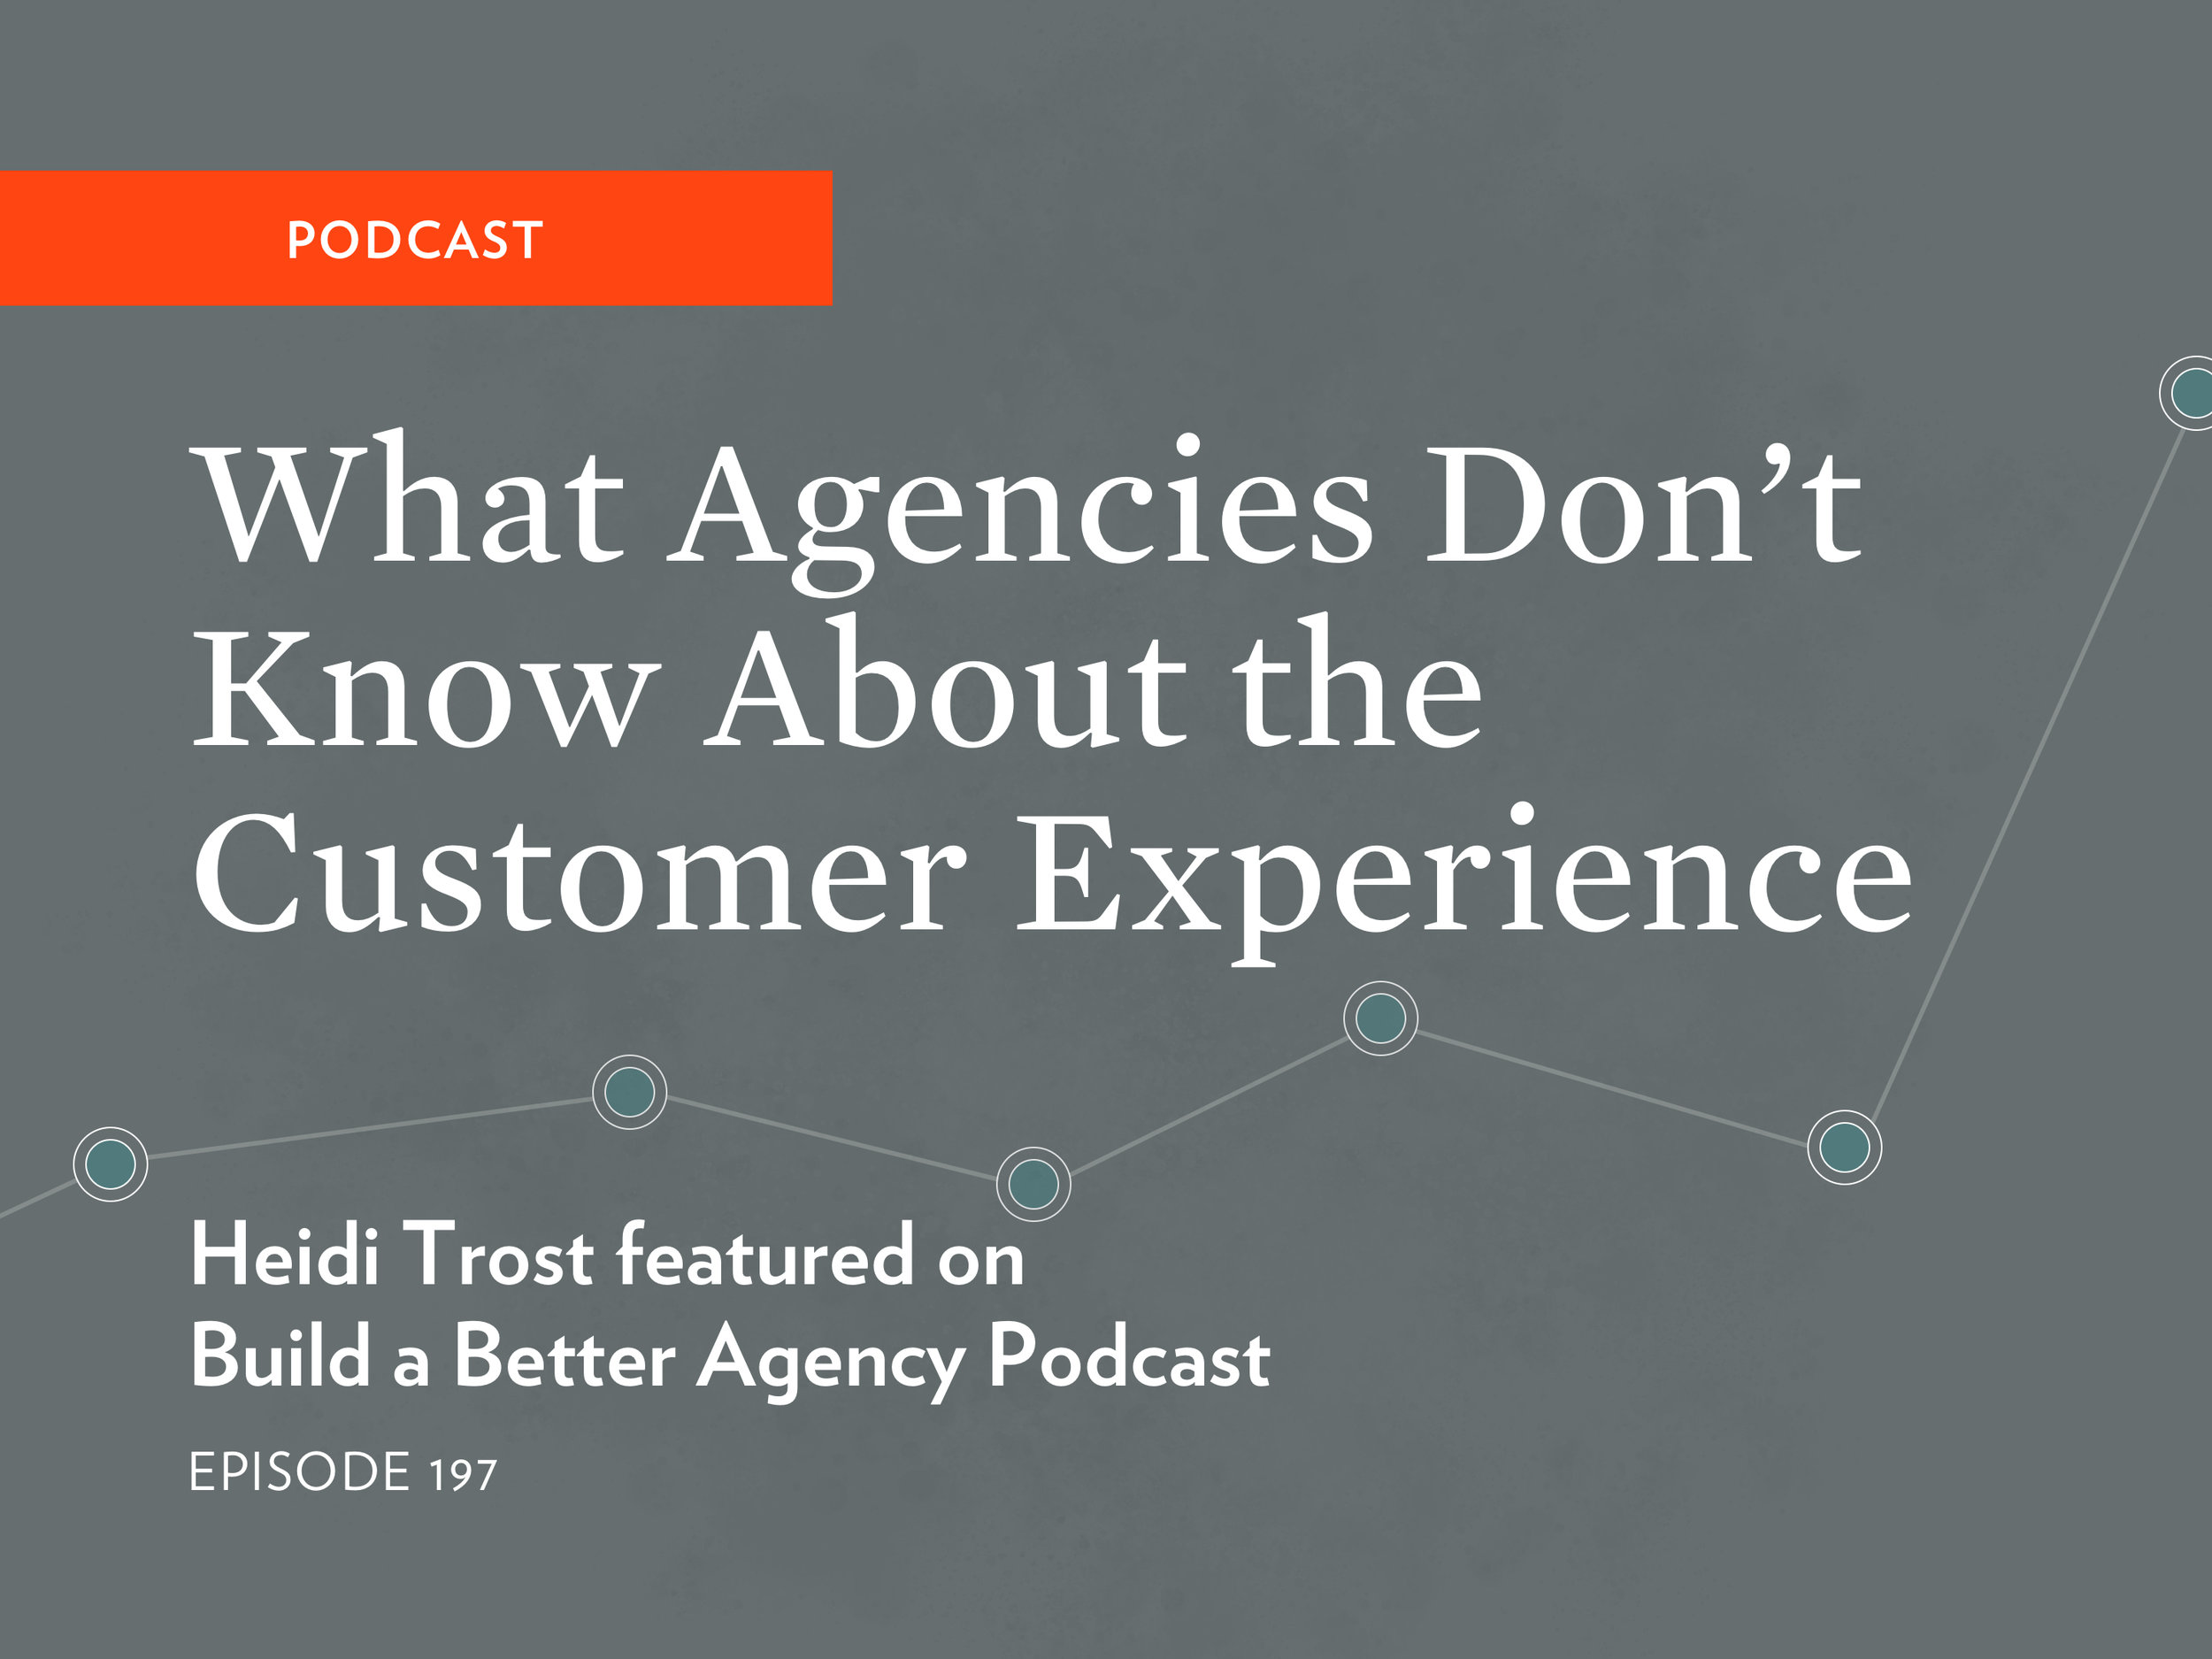 Podcast: What Agencies Don't Know About the Customer Experience